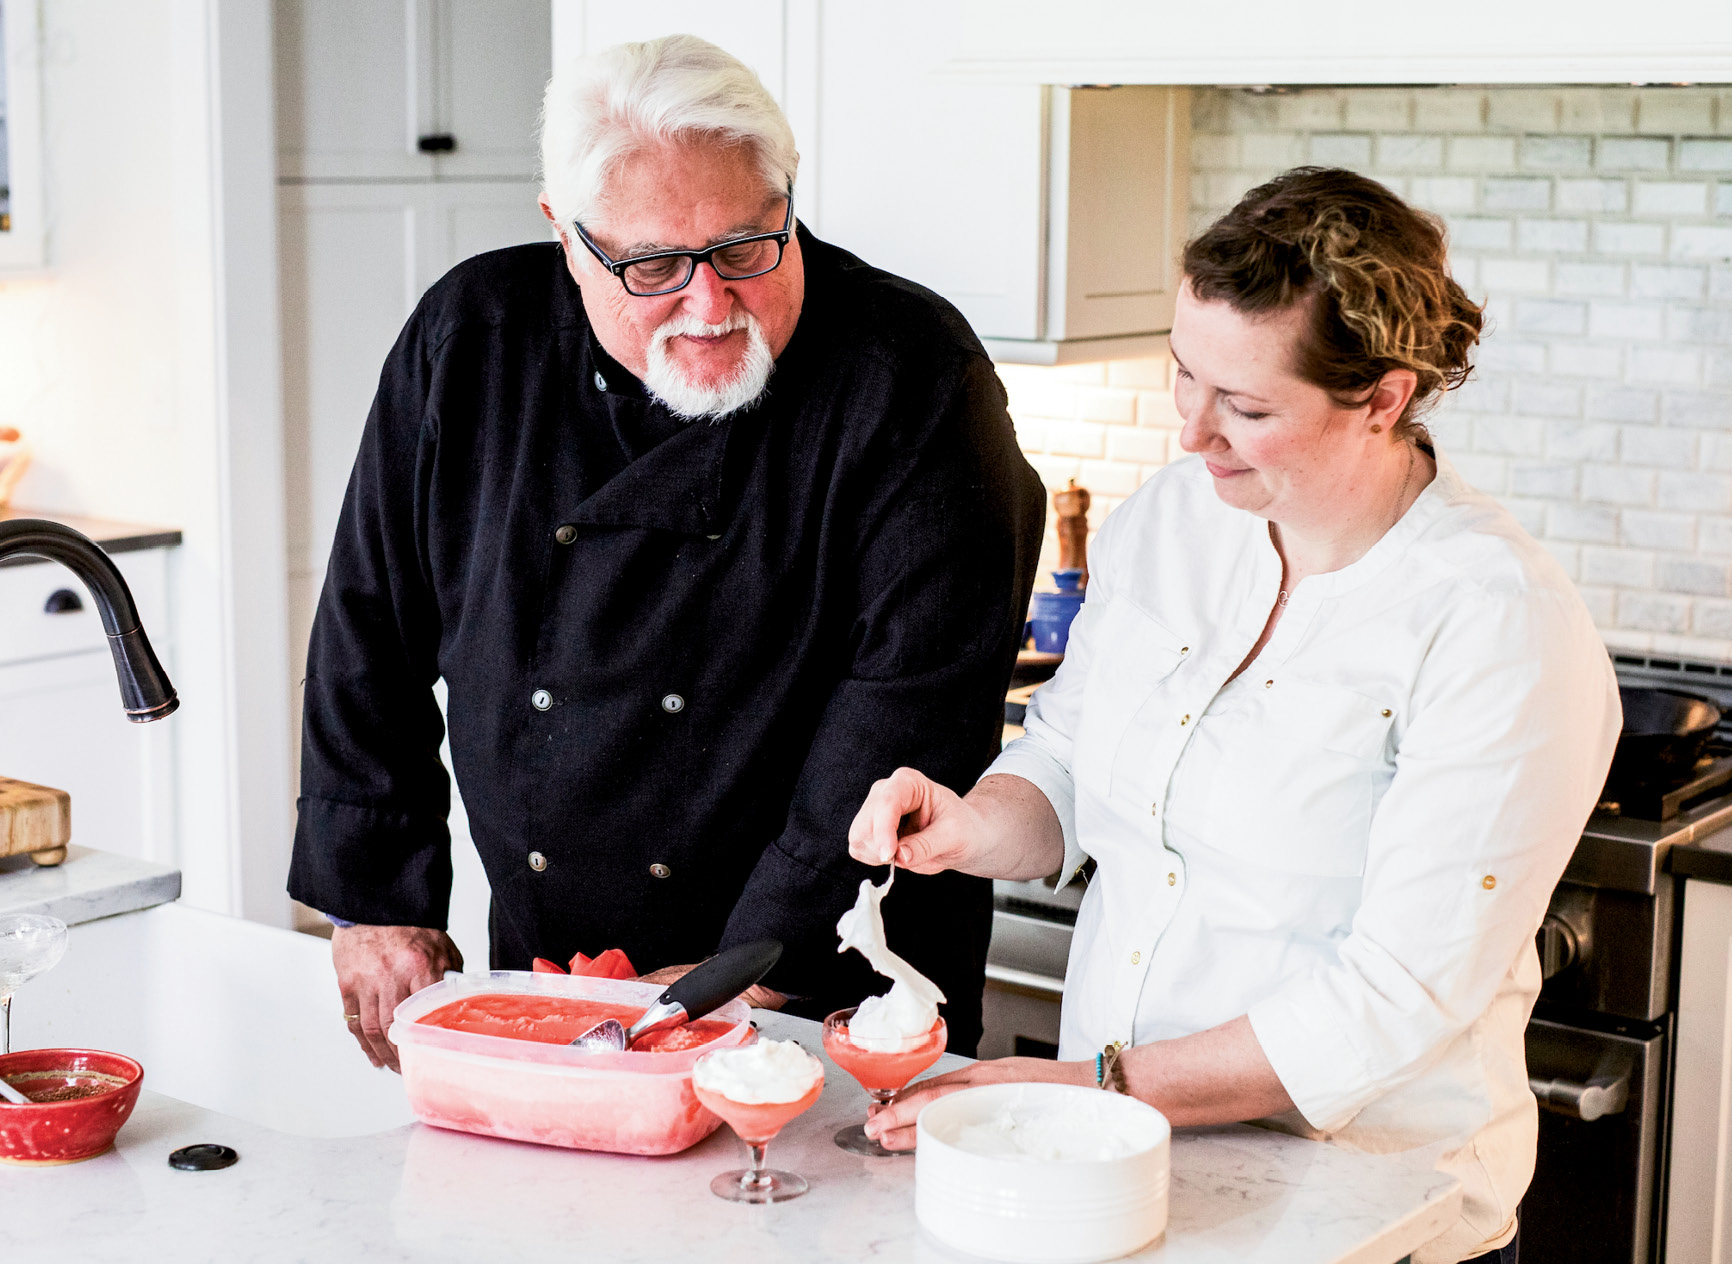 MariElena scoops strawberry elderflower sorbet into glasses and then tops the desserts with marshmallow fluff. The sticky stuff combines well with the smooth, frozen treat.